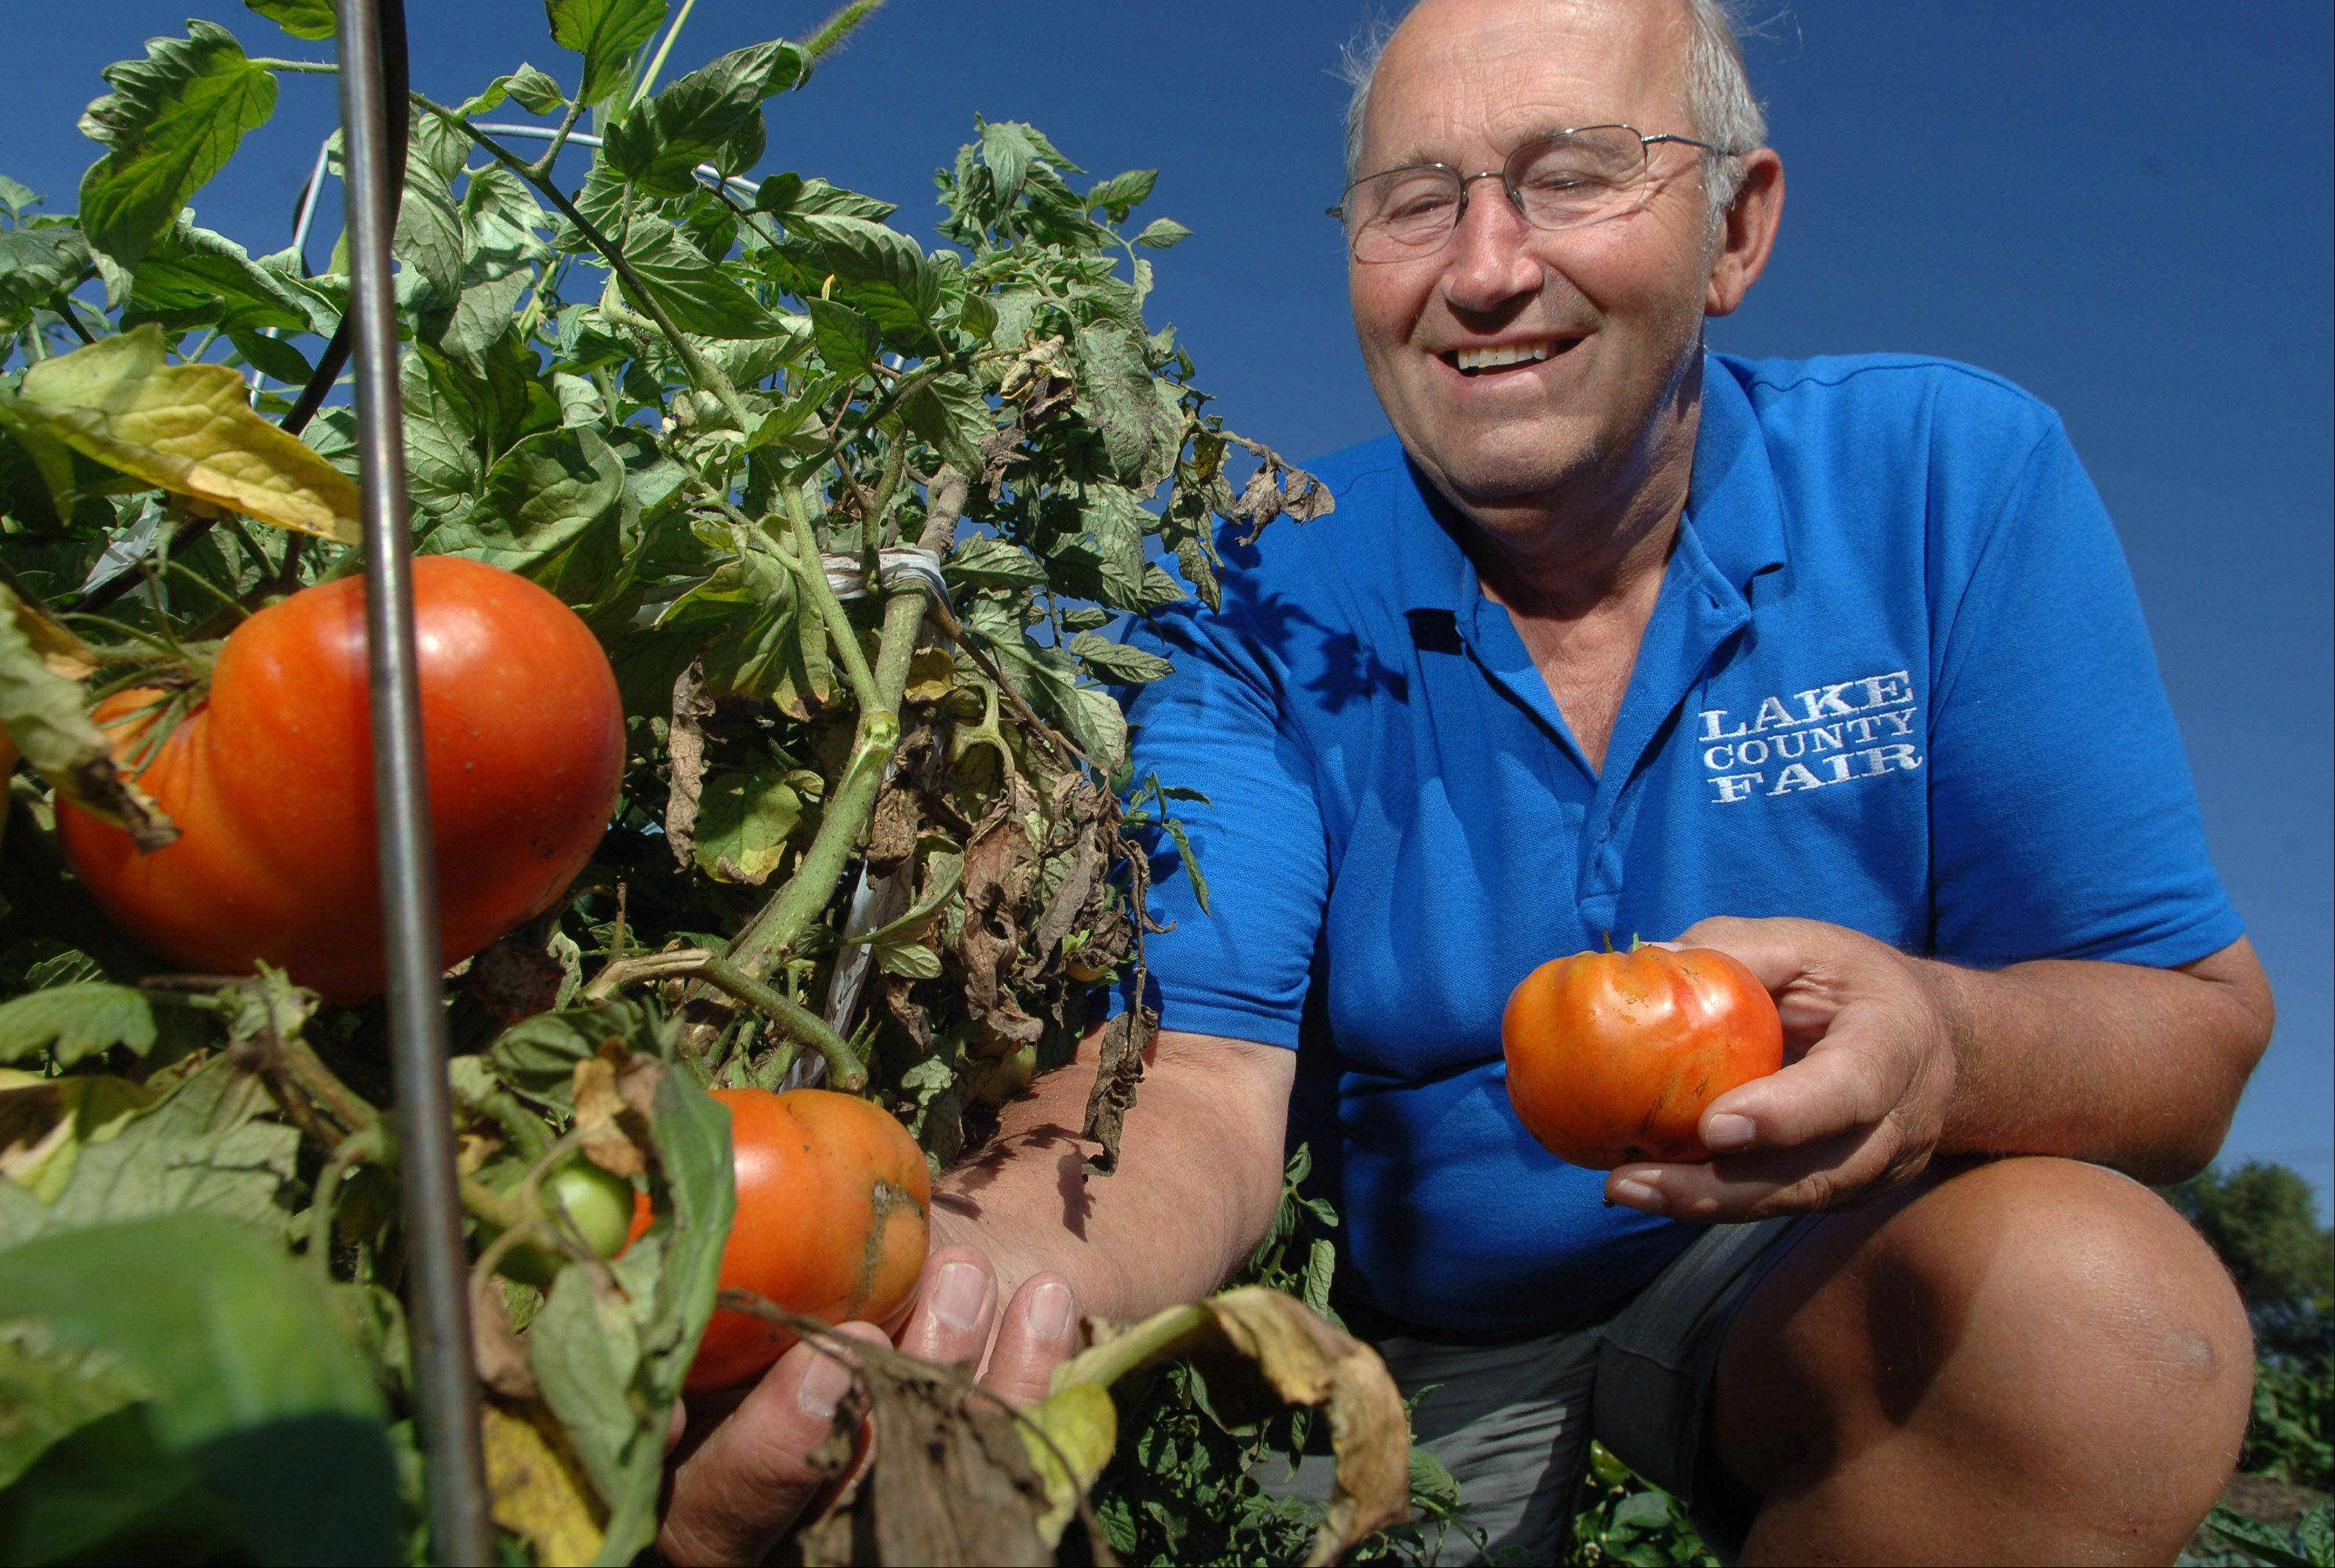 Fremont Township Supervisor Pete Tekampe looks over tomatoes in the township's garden. Tekampe won't seek re-election in 2013.